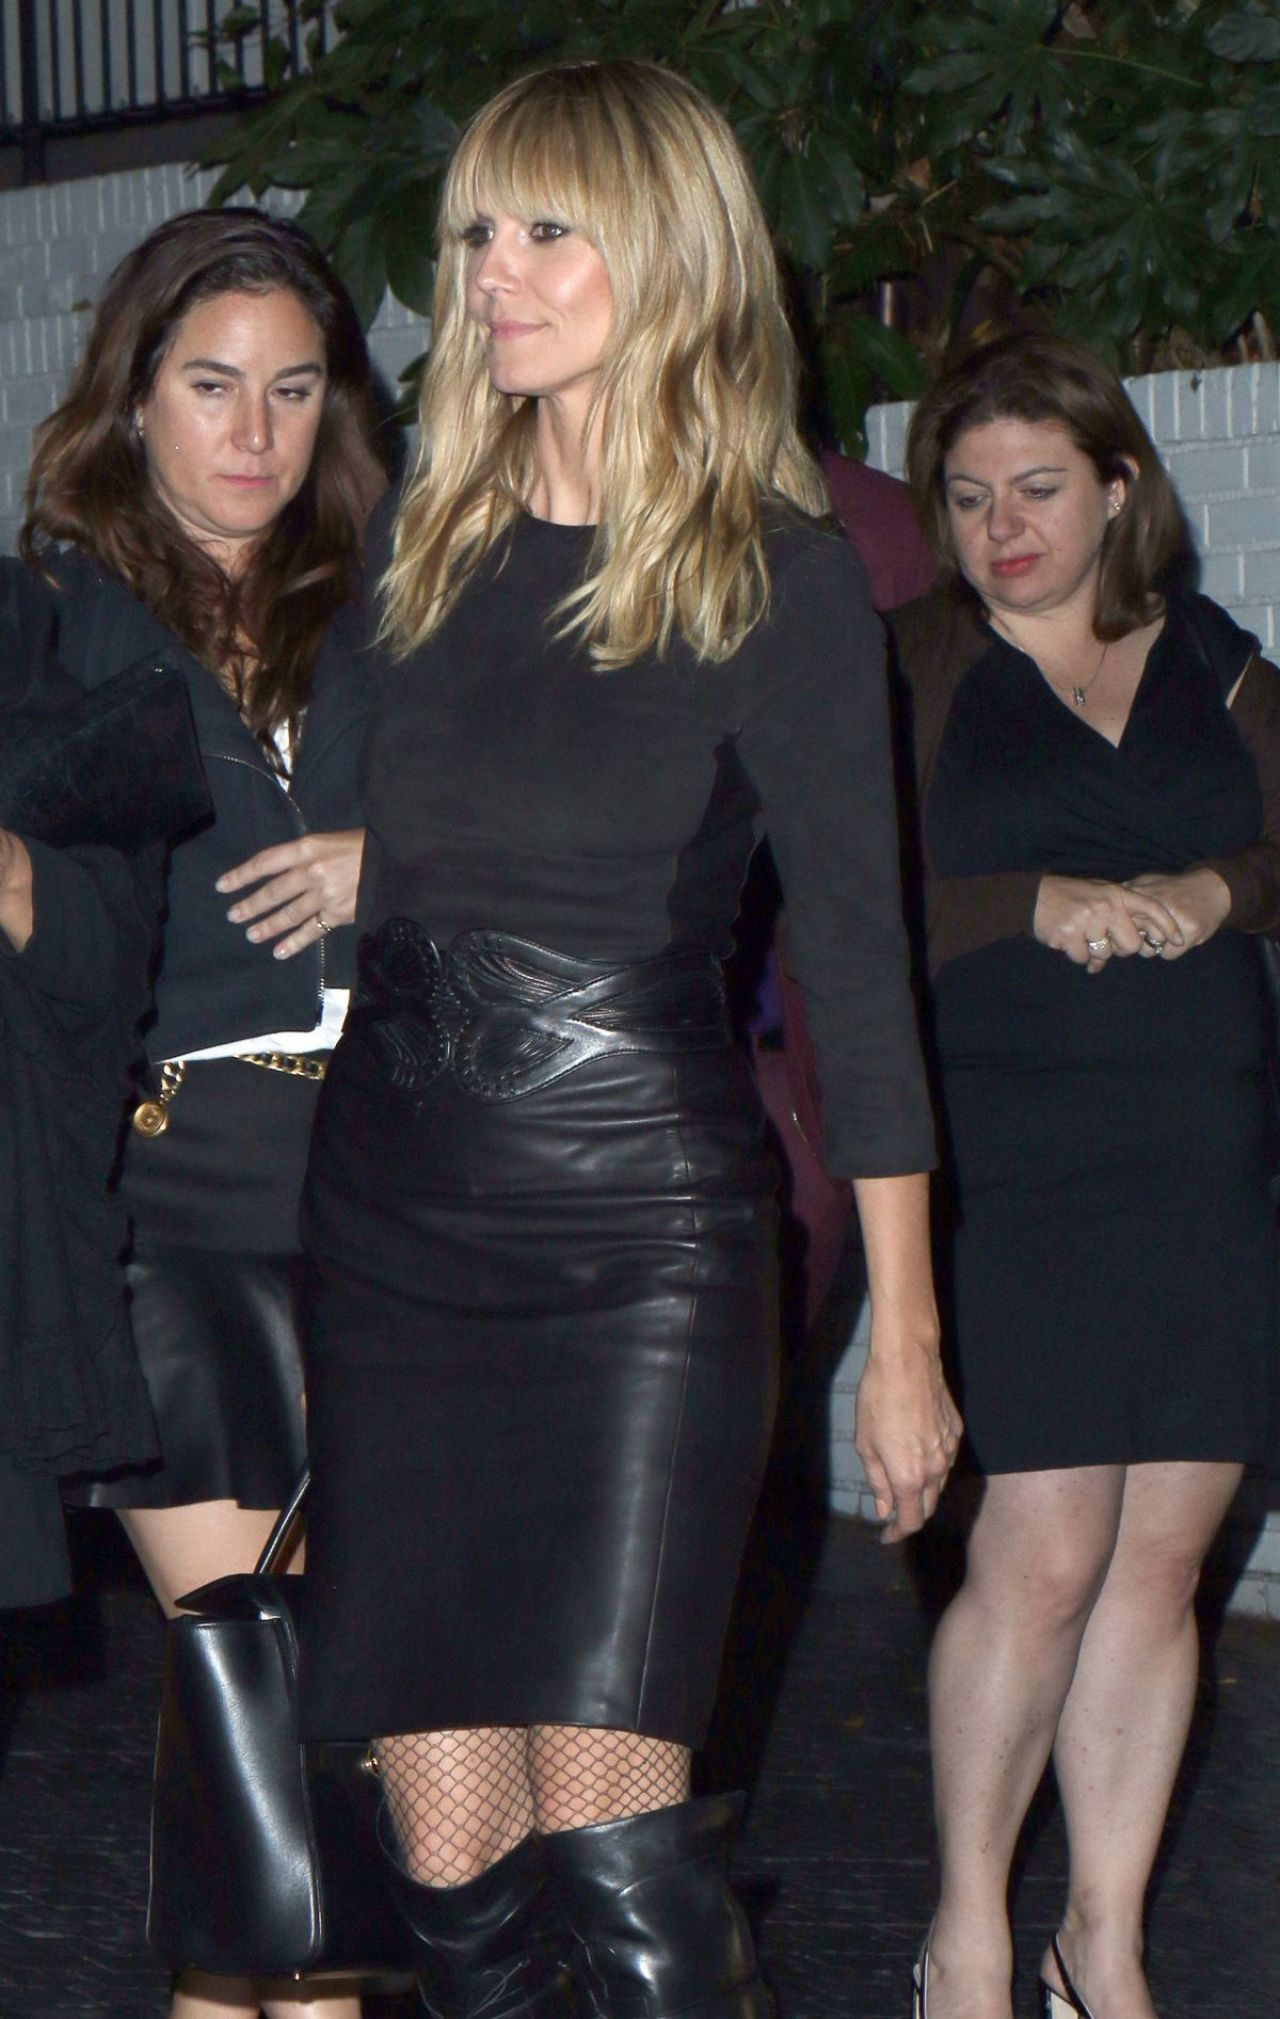 Heidi Klum - The annual Midnight Grammy Brunch at Lure Nightclub in Hollywood, January 2014